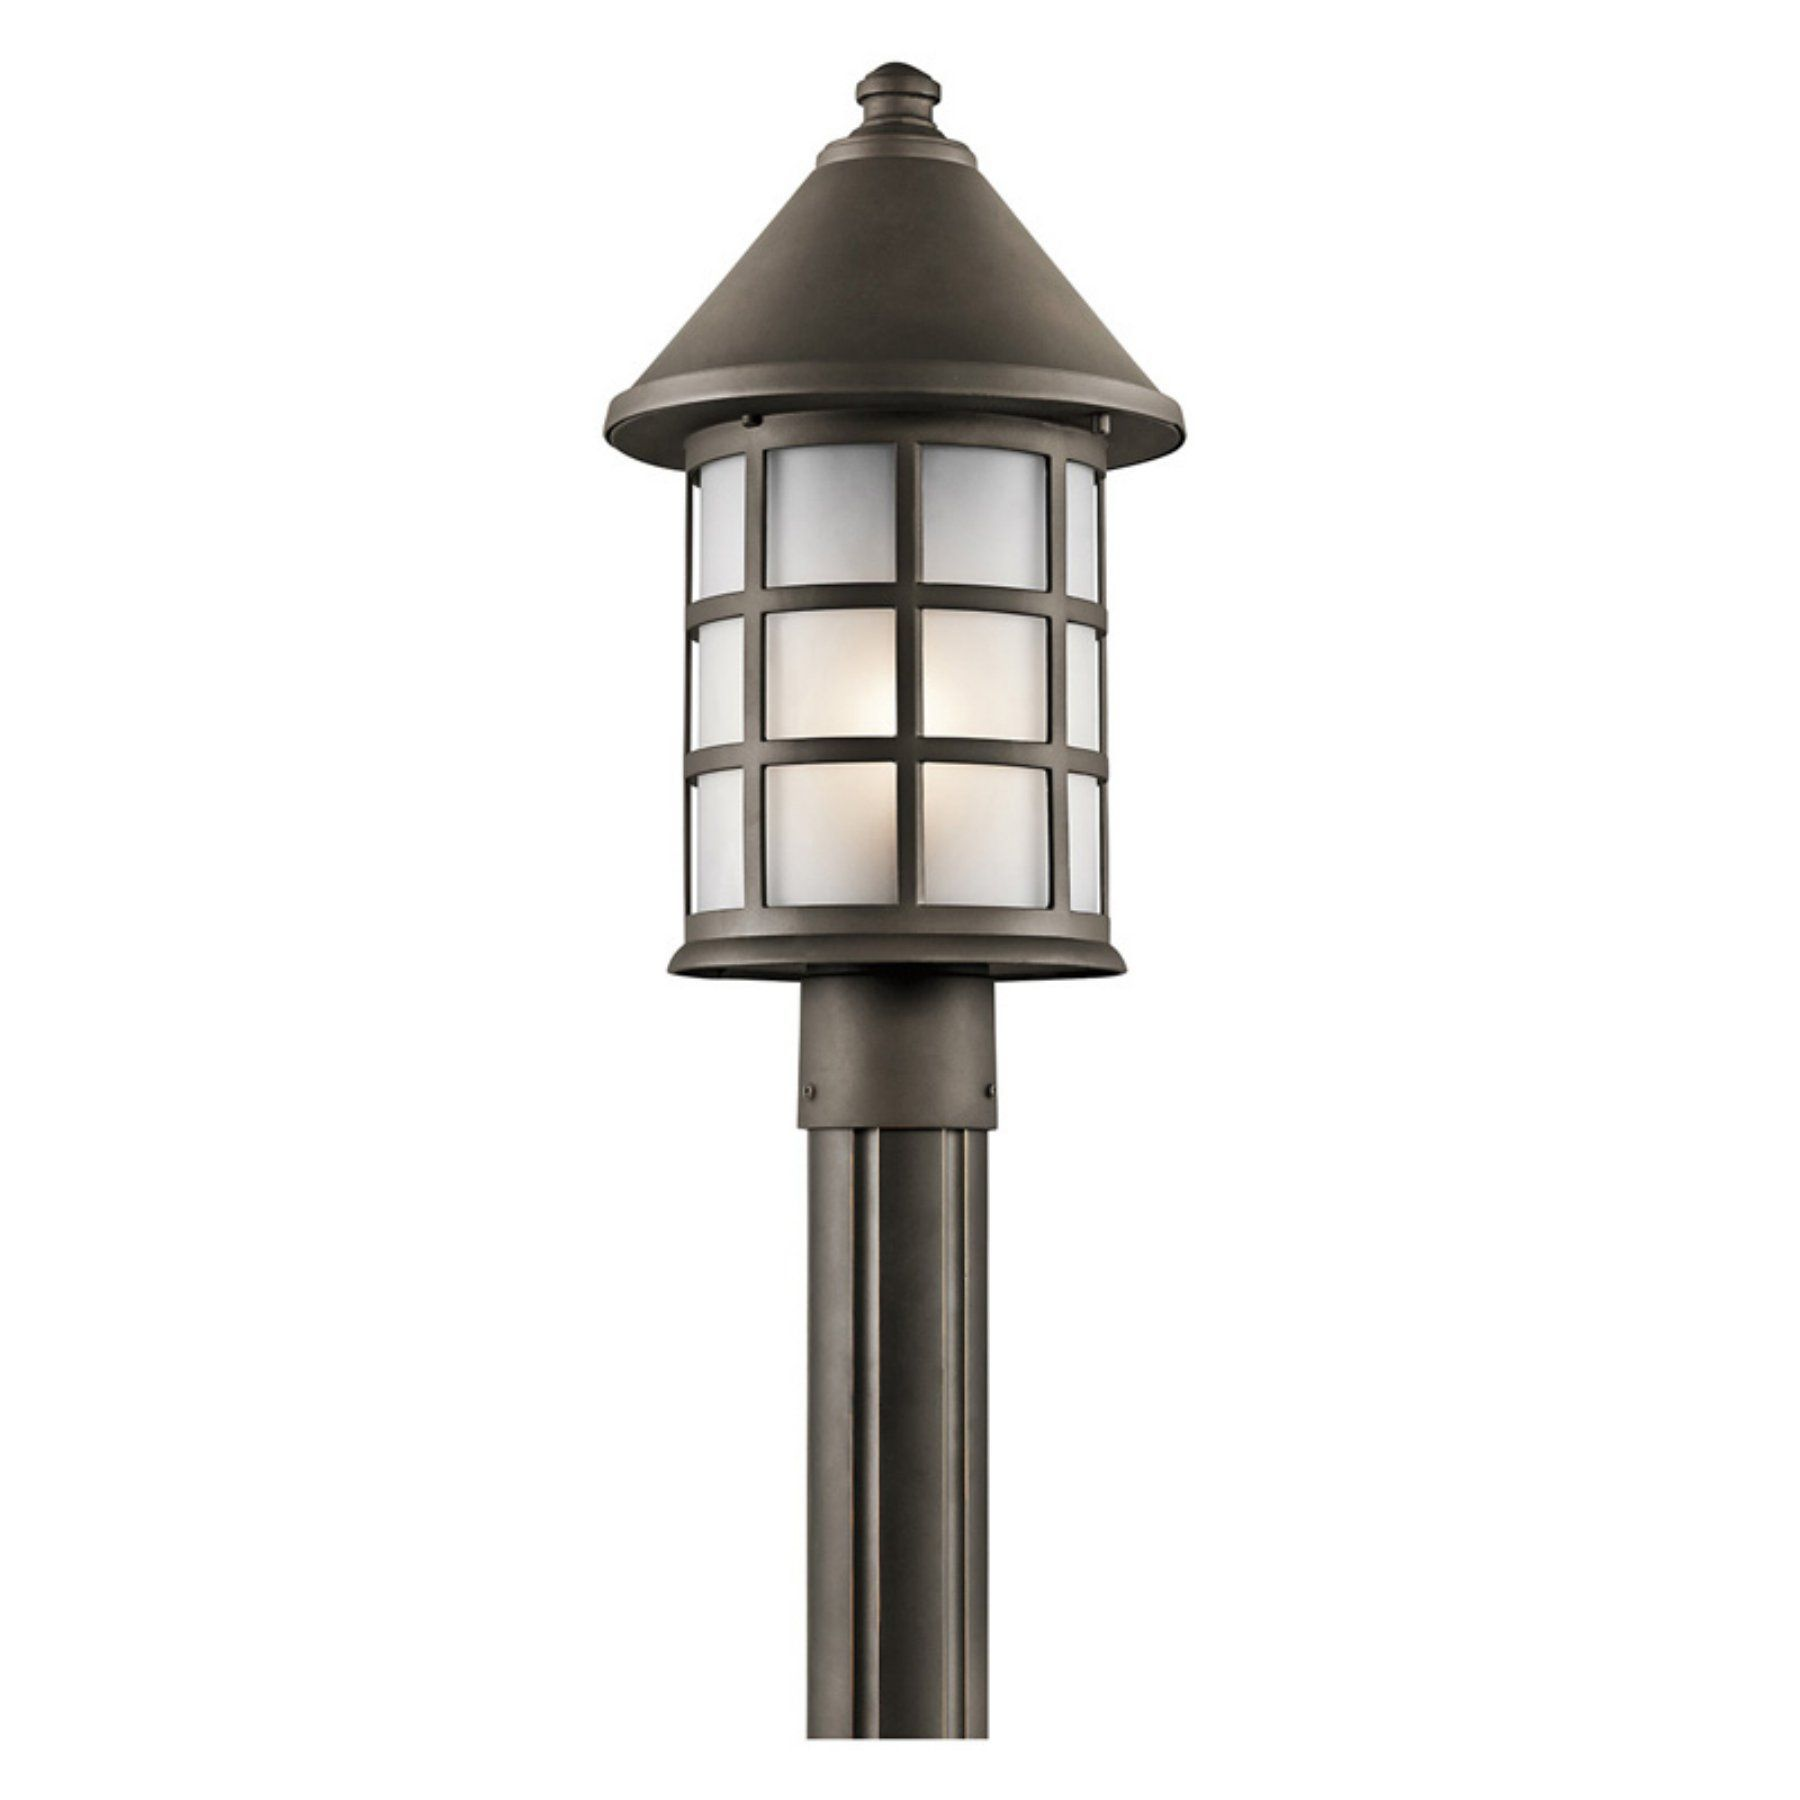 Kichler town light 49621oz outdoor post light 49621oz products kichler town light 49621oz outdoor post light 49621oz mozeypictures Image collections